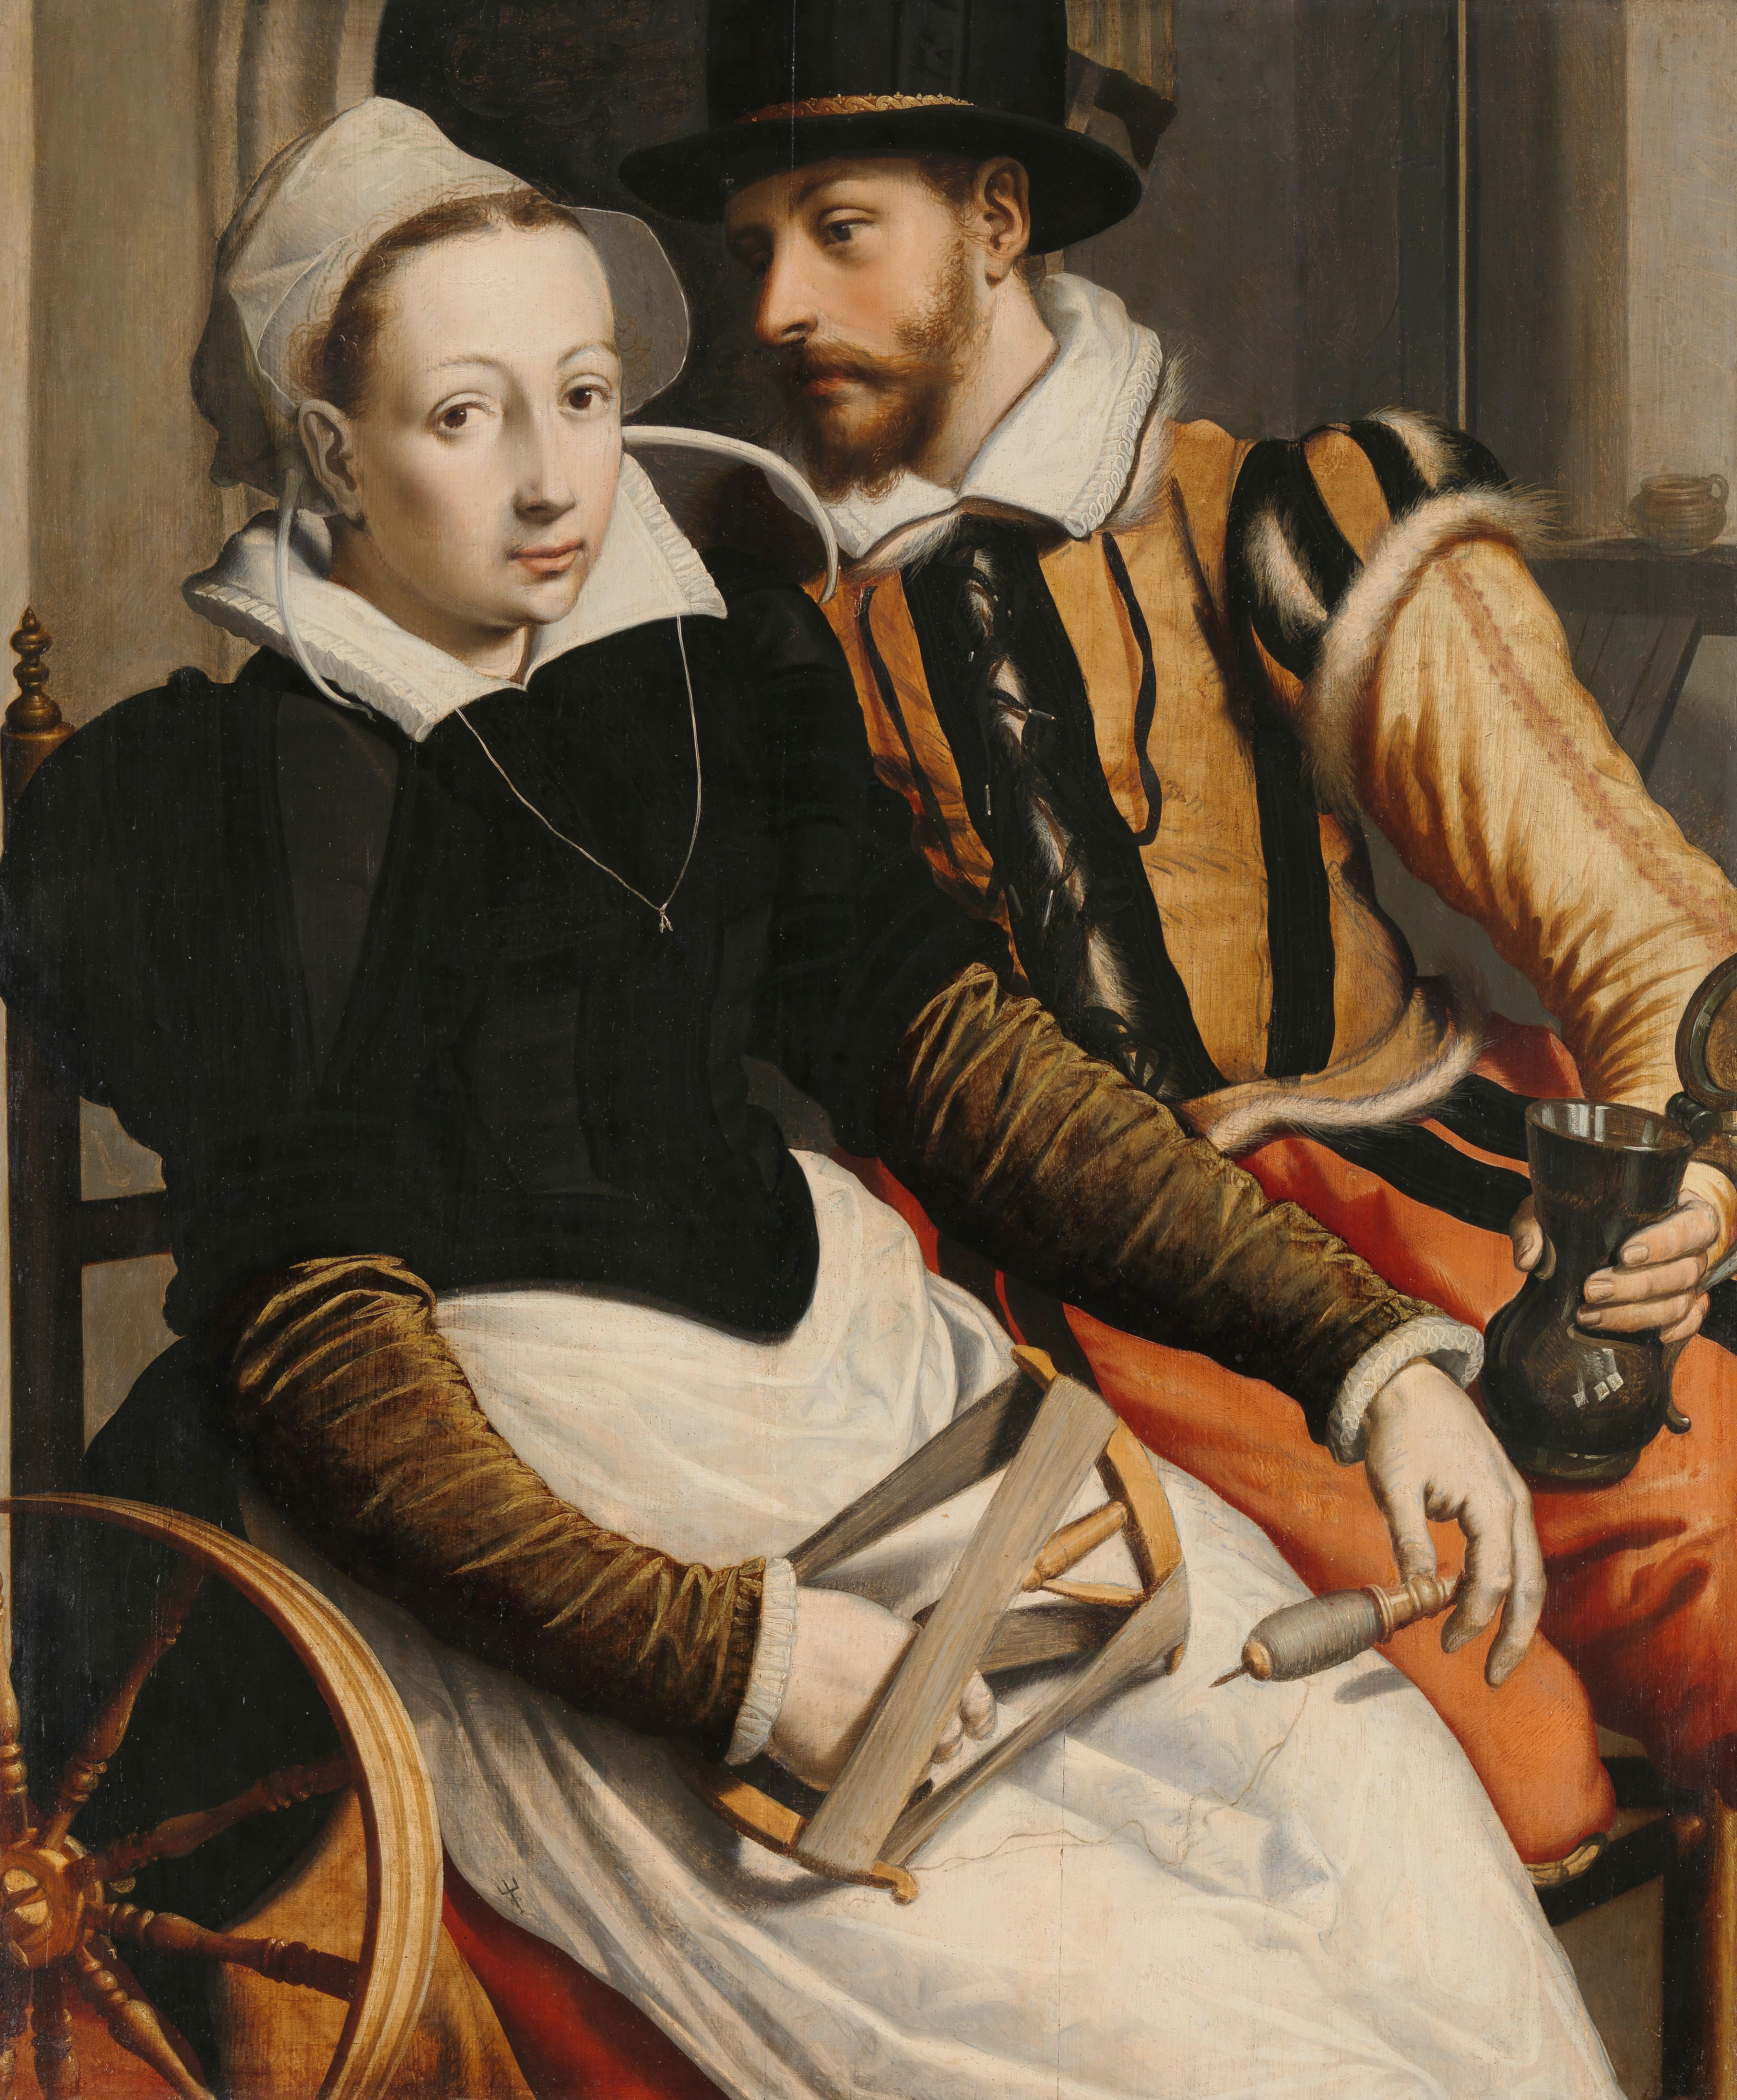 Man and Woman at a Spinning Wheel, Pieter Pietersz. (I), c. 1560 - c. 1570